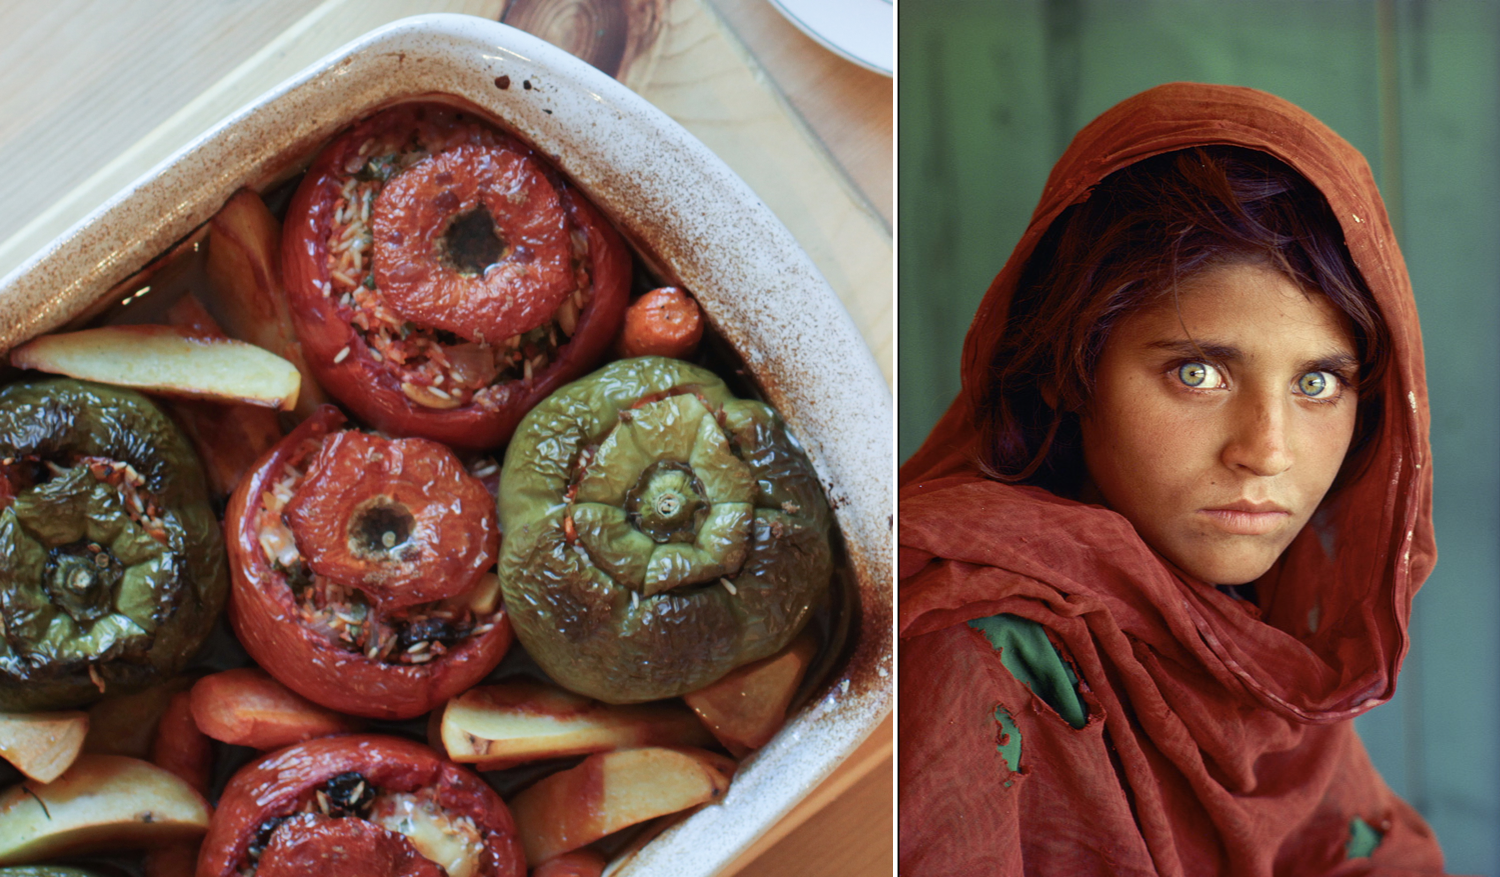 Right:  Afghan Girl , Steve McCurry (Sharbat Gula pictured), 1985,published on the cover of National Geographic in 1985